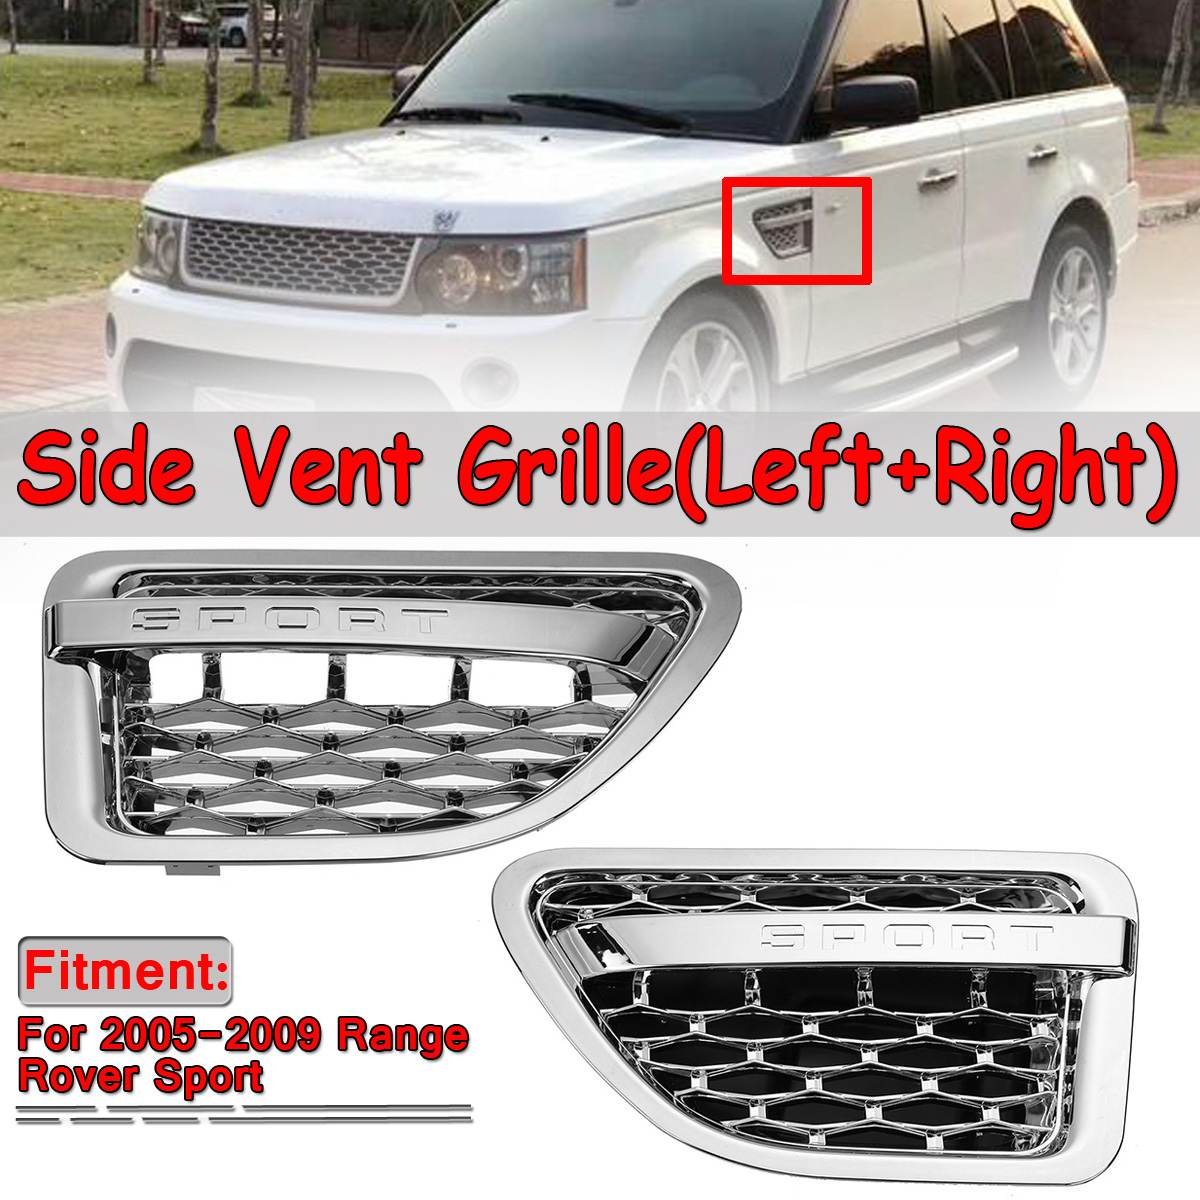 2pcs Car Side Vent Grille Grill For Land Rover For Range Rover Sport 2005-2009 Tuning Air Side Vent Grille Grid Outlet Assembly2pcs Car Side Vent Grille Grill For Land Rover For Range Rover Sport 2005-2009 Tuning Air Side Vent Grille Grid Outlet Assembly